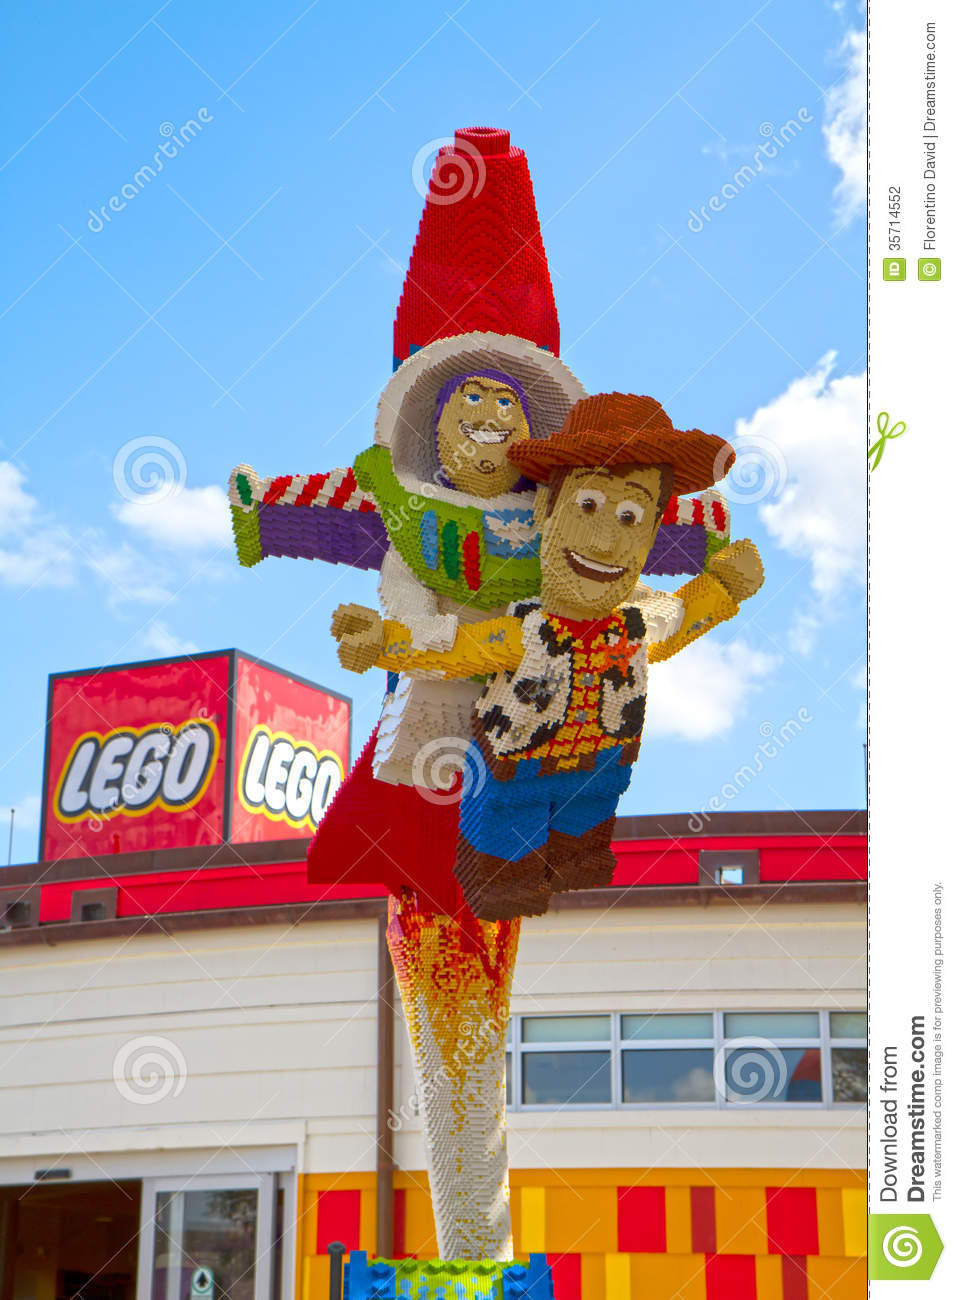 Toy Story Lego Statue Editorial Photography Image Of Buzz 35714552